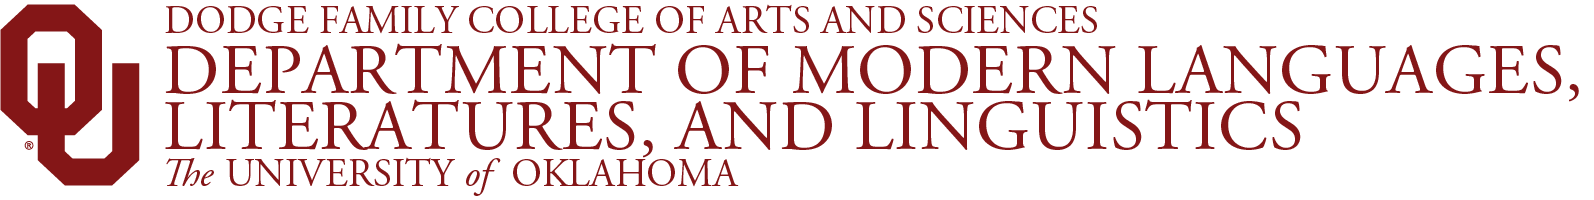 College of Arts and Sciences, Department of Modern Languages, Literatures and Linguistics, The University of Oklahoma website wordmark